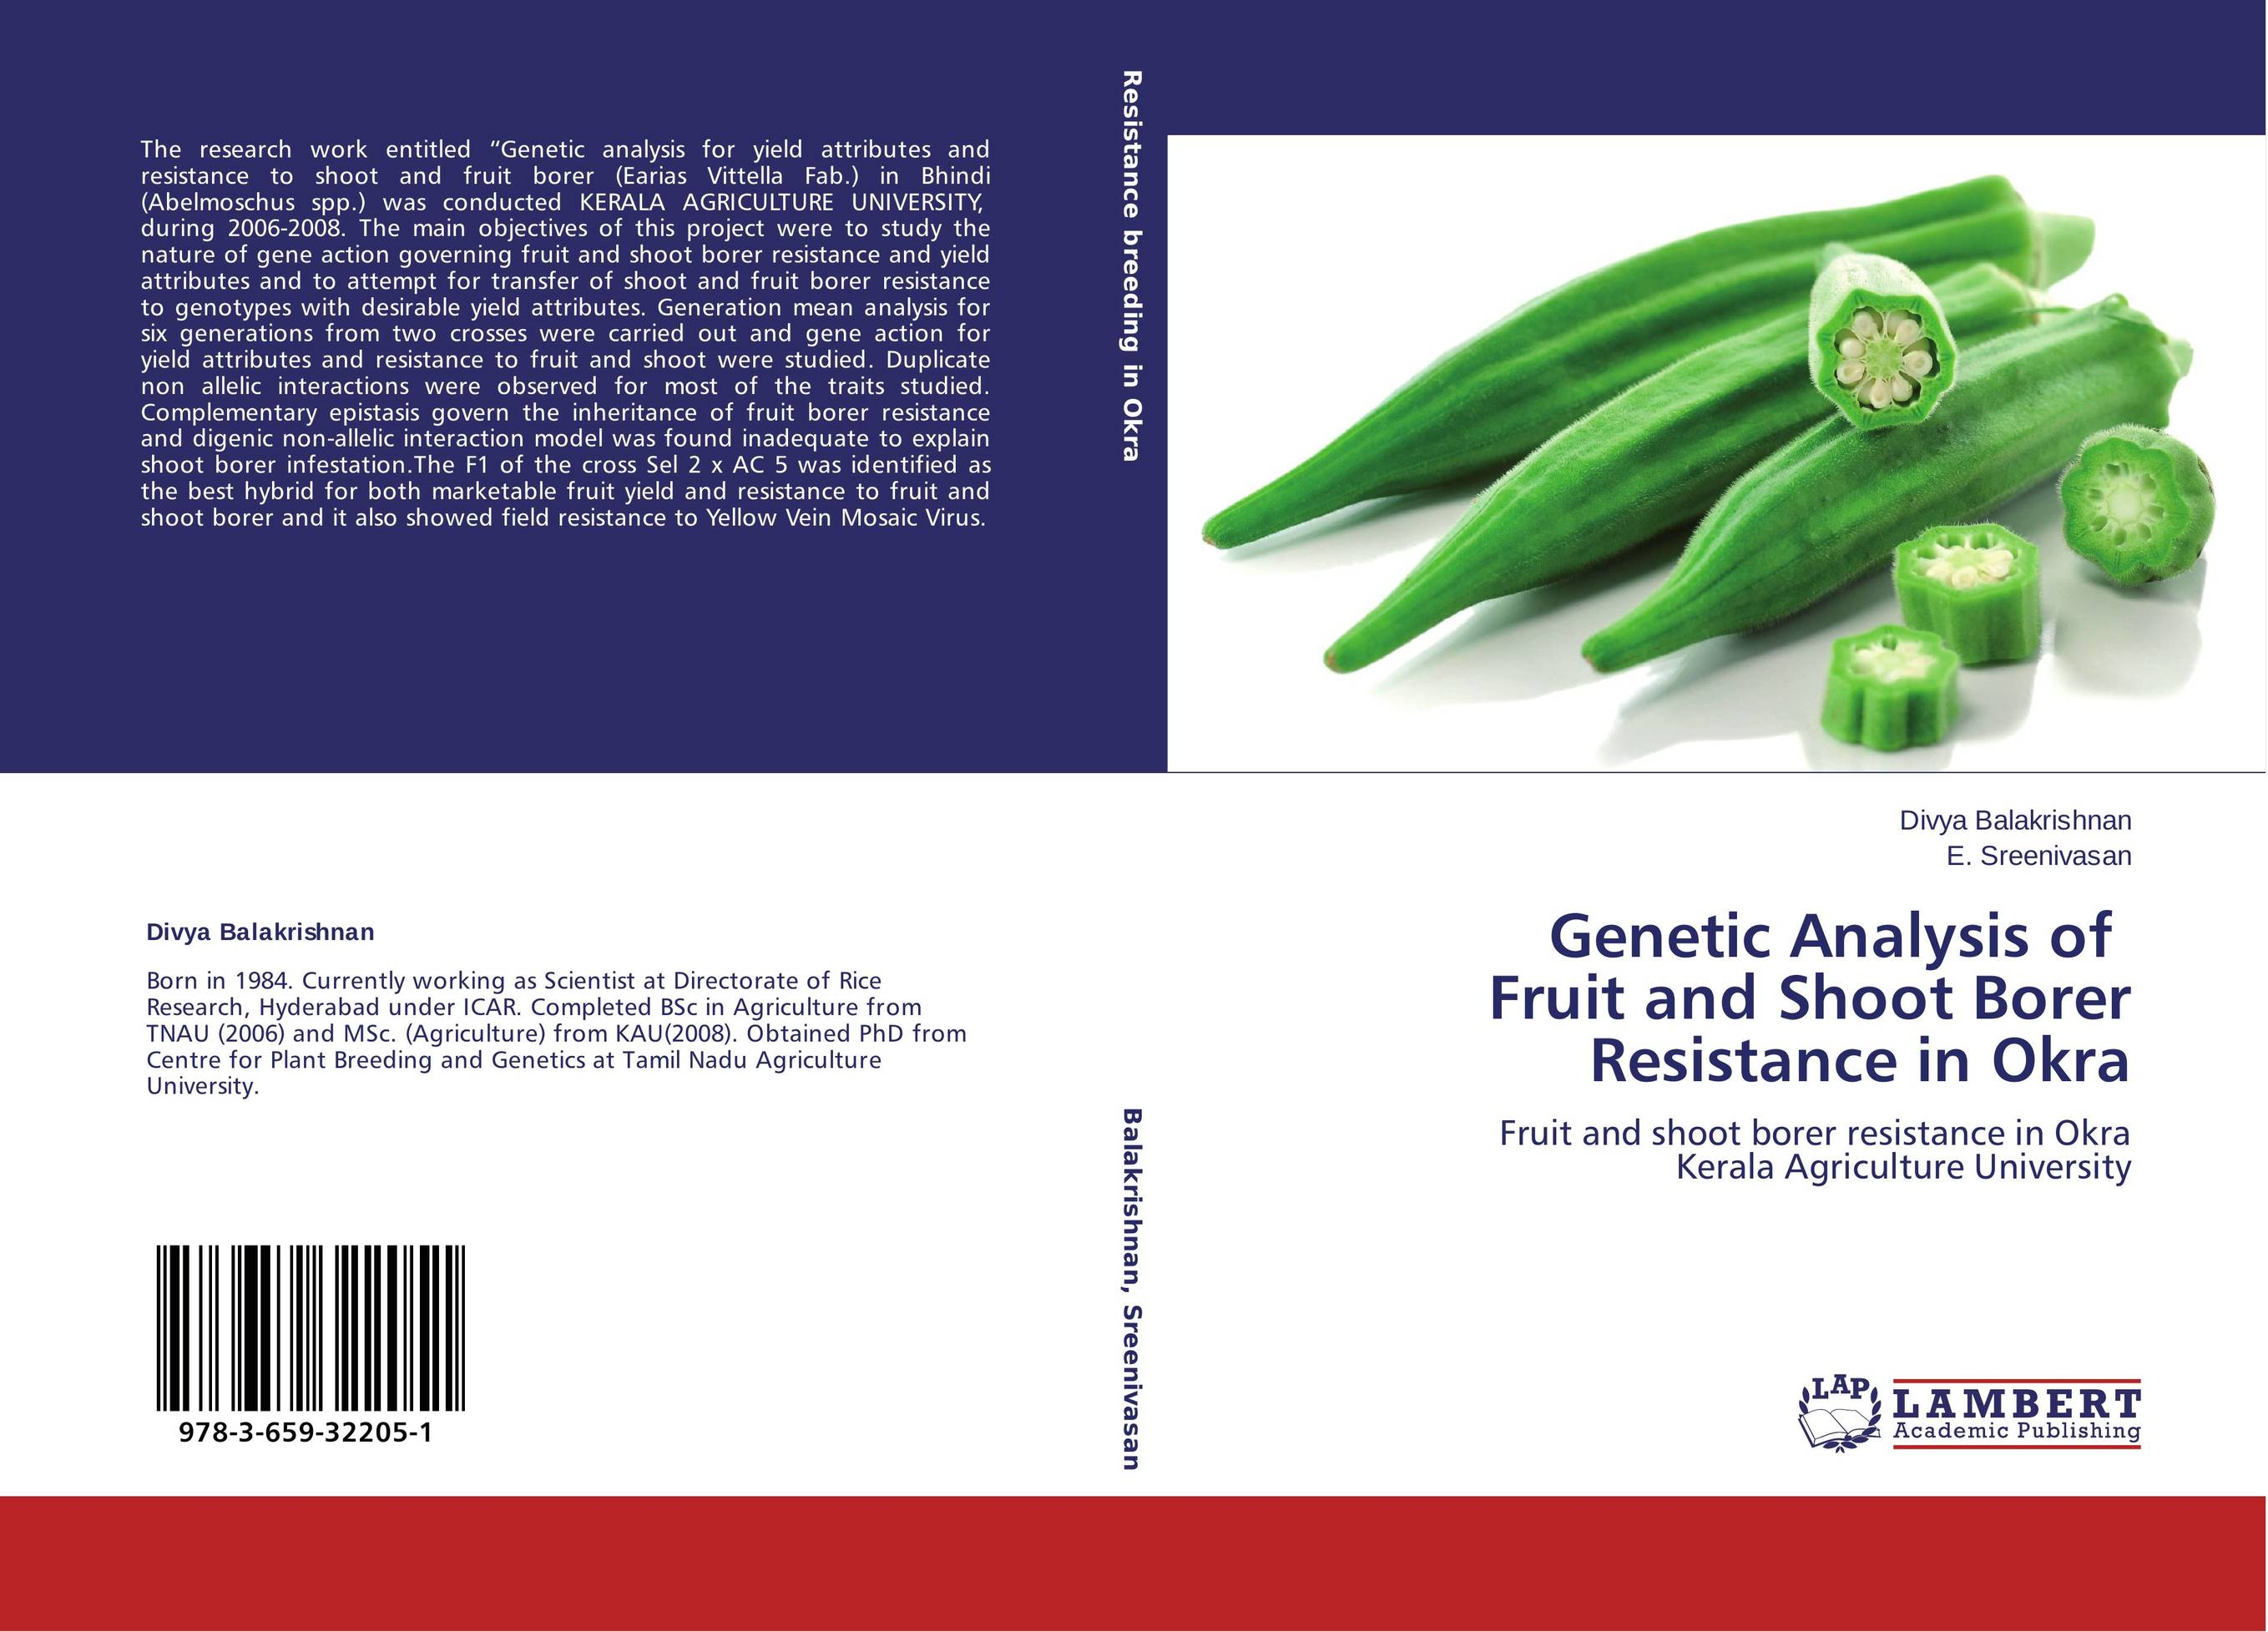 an analysis of the genetic control of fruit vitamin c contents Fruit is the best food source of vitamin c, but while apple is the most highly consumed fruit (in 13 european countries), it has only modest amounts of vitamin c (davey et al  2000.